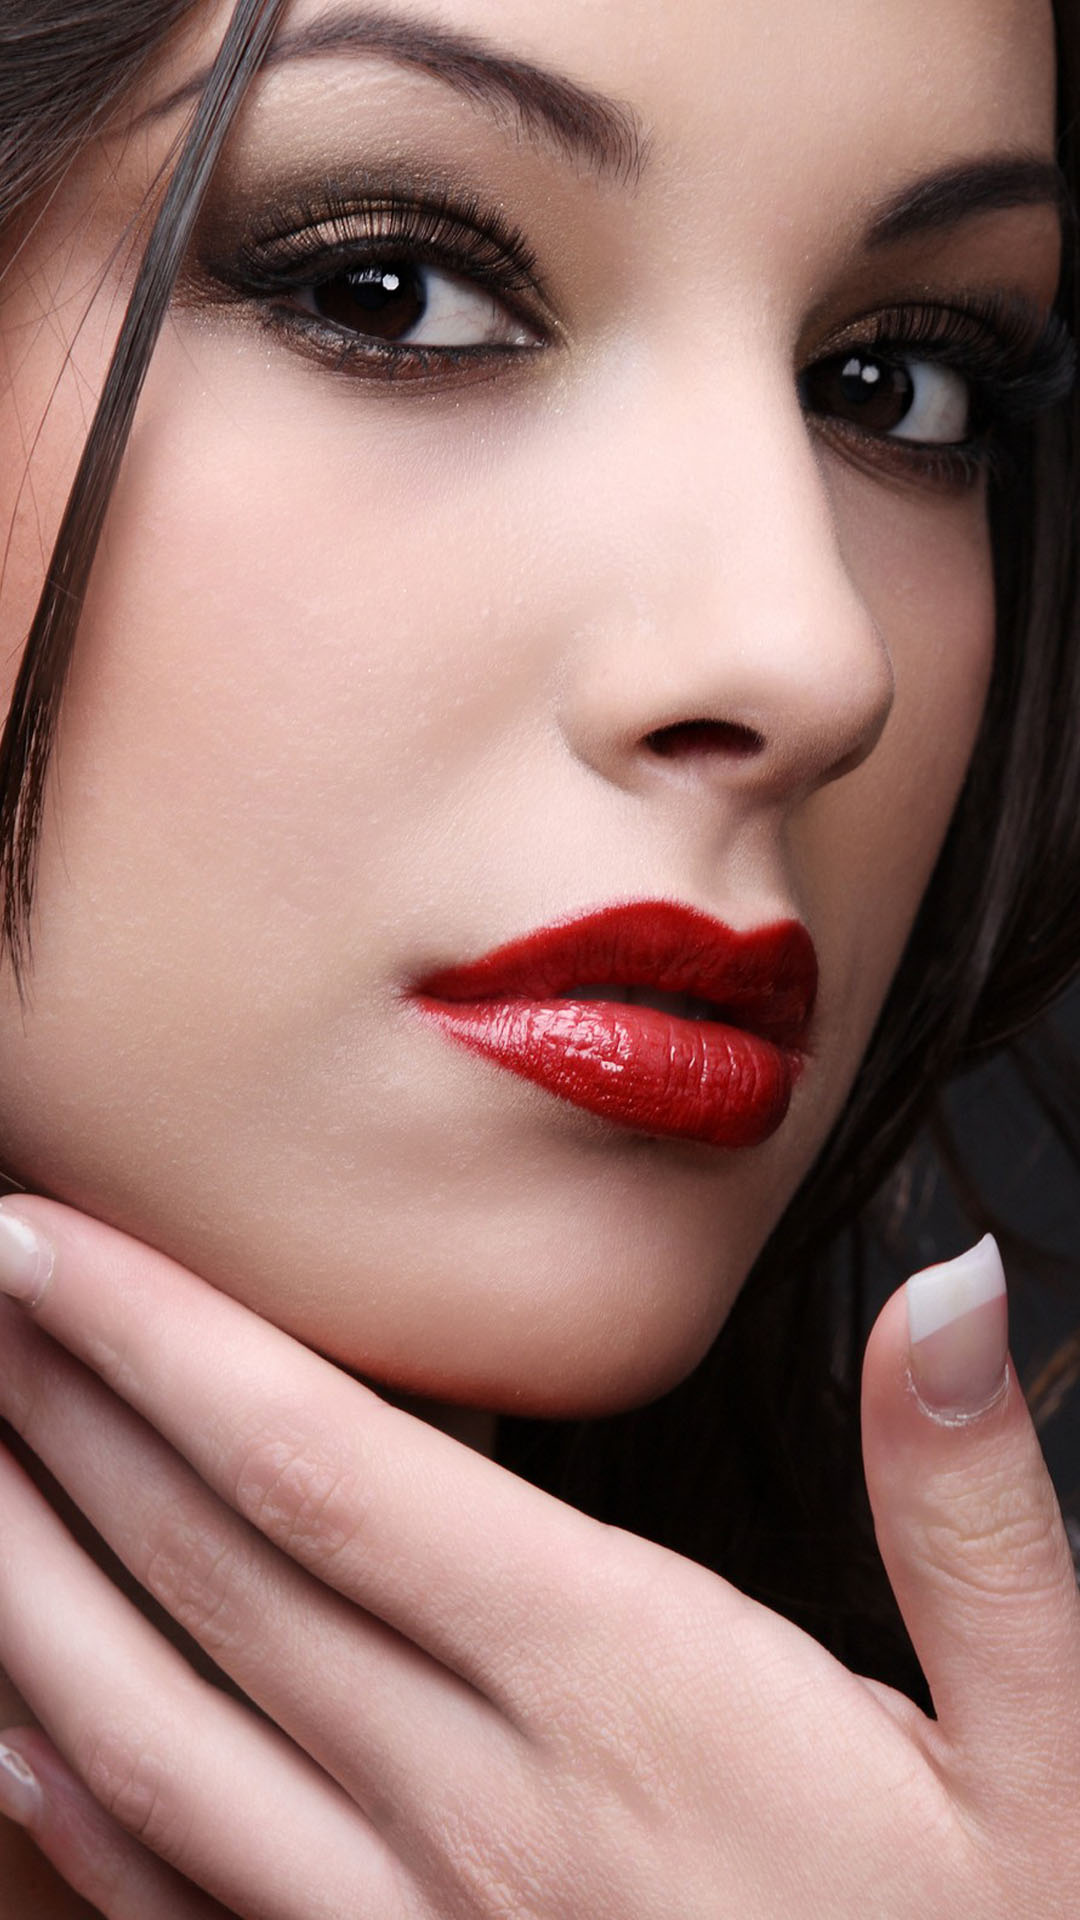 Cool Girl Wallpapers For Mobile Phones Red Lipstick Portrait Best Htc One Wallpapers